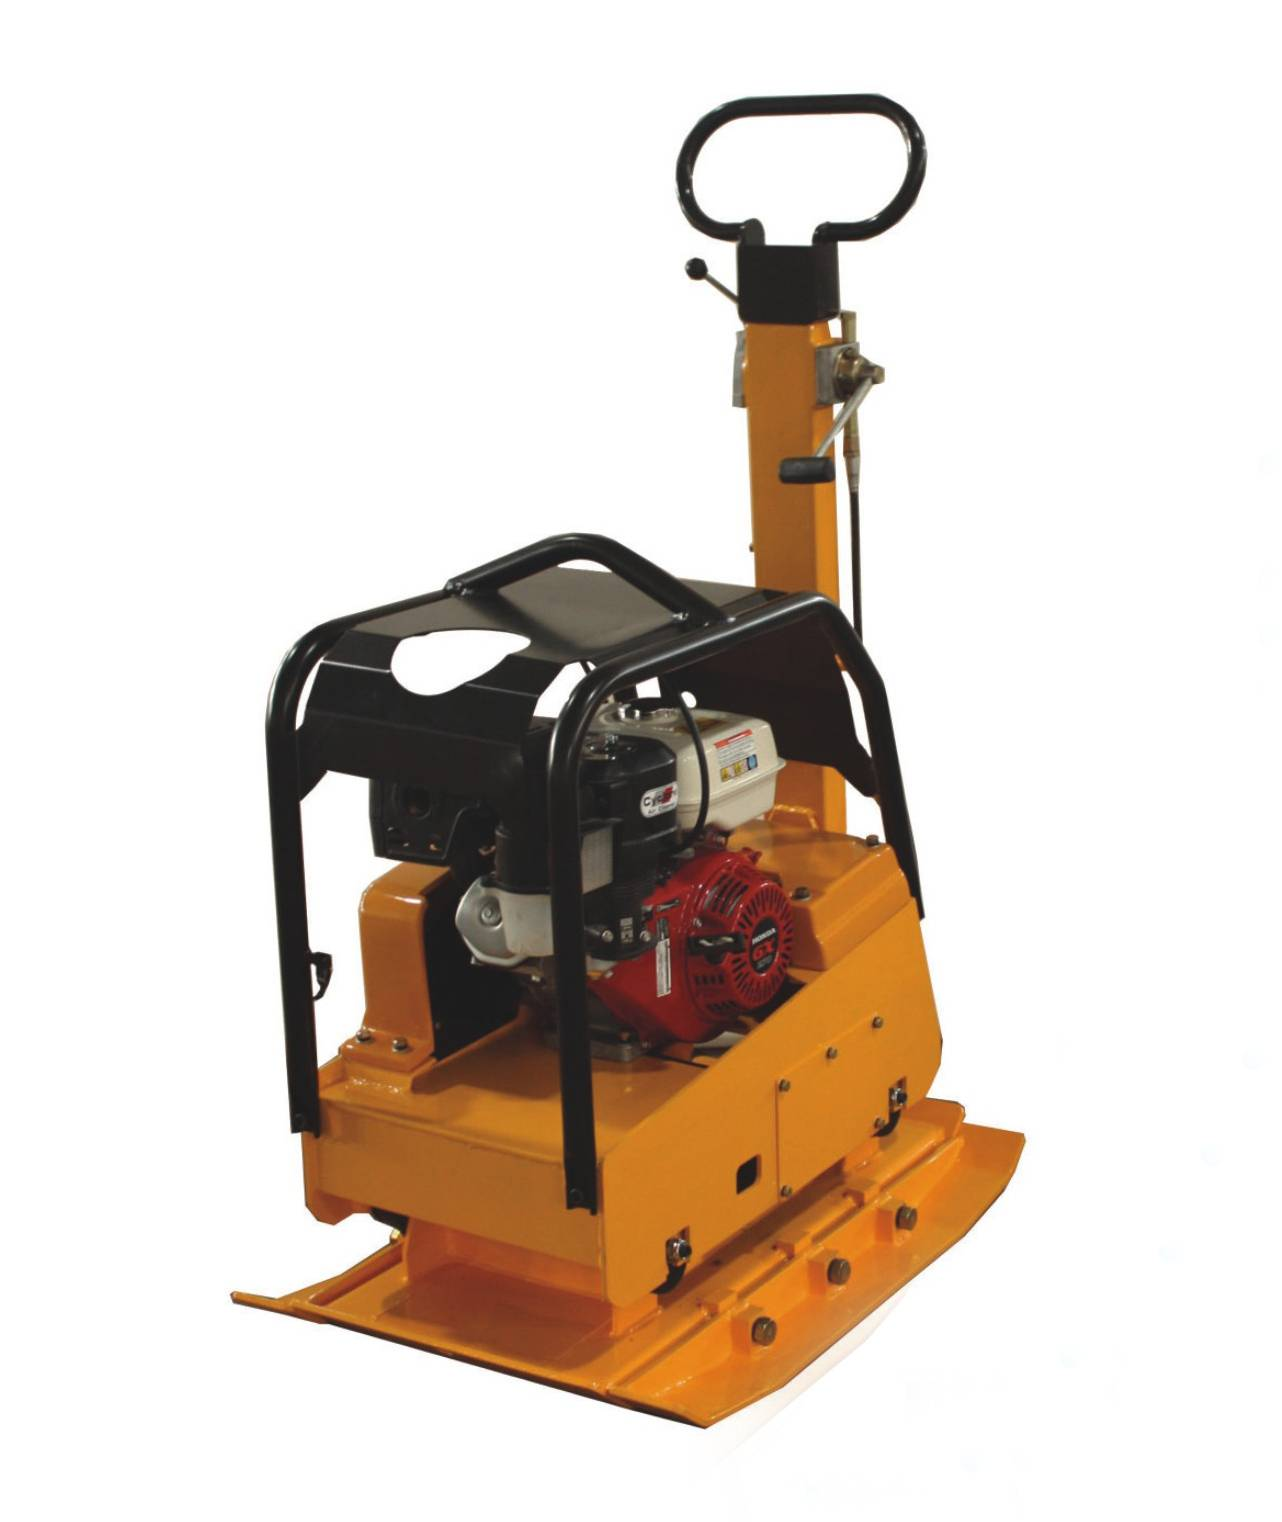 Plate Compactor GC330